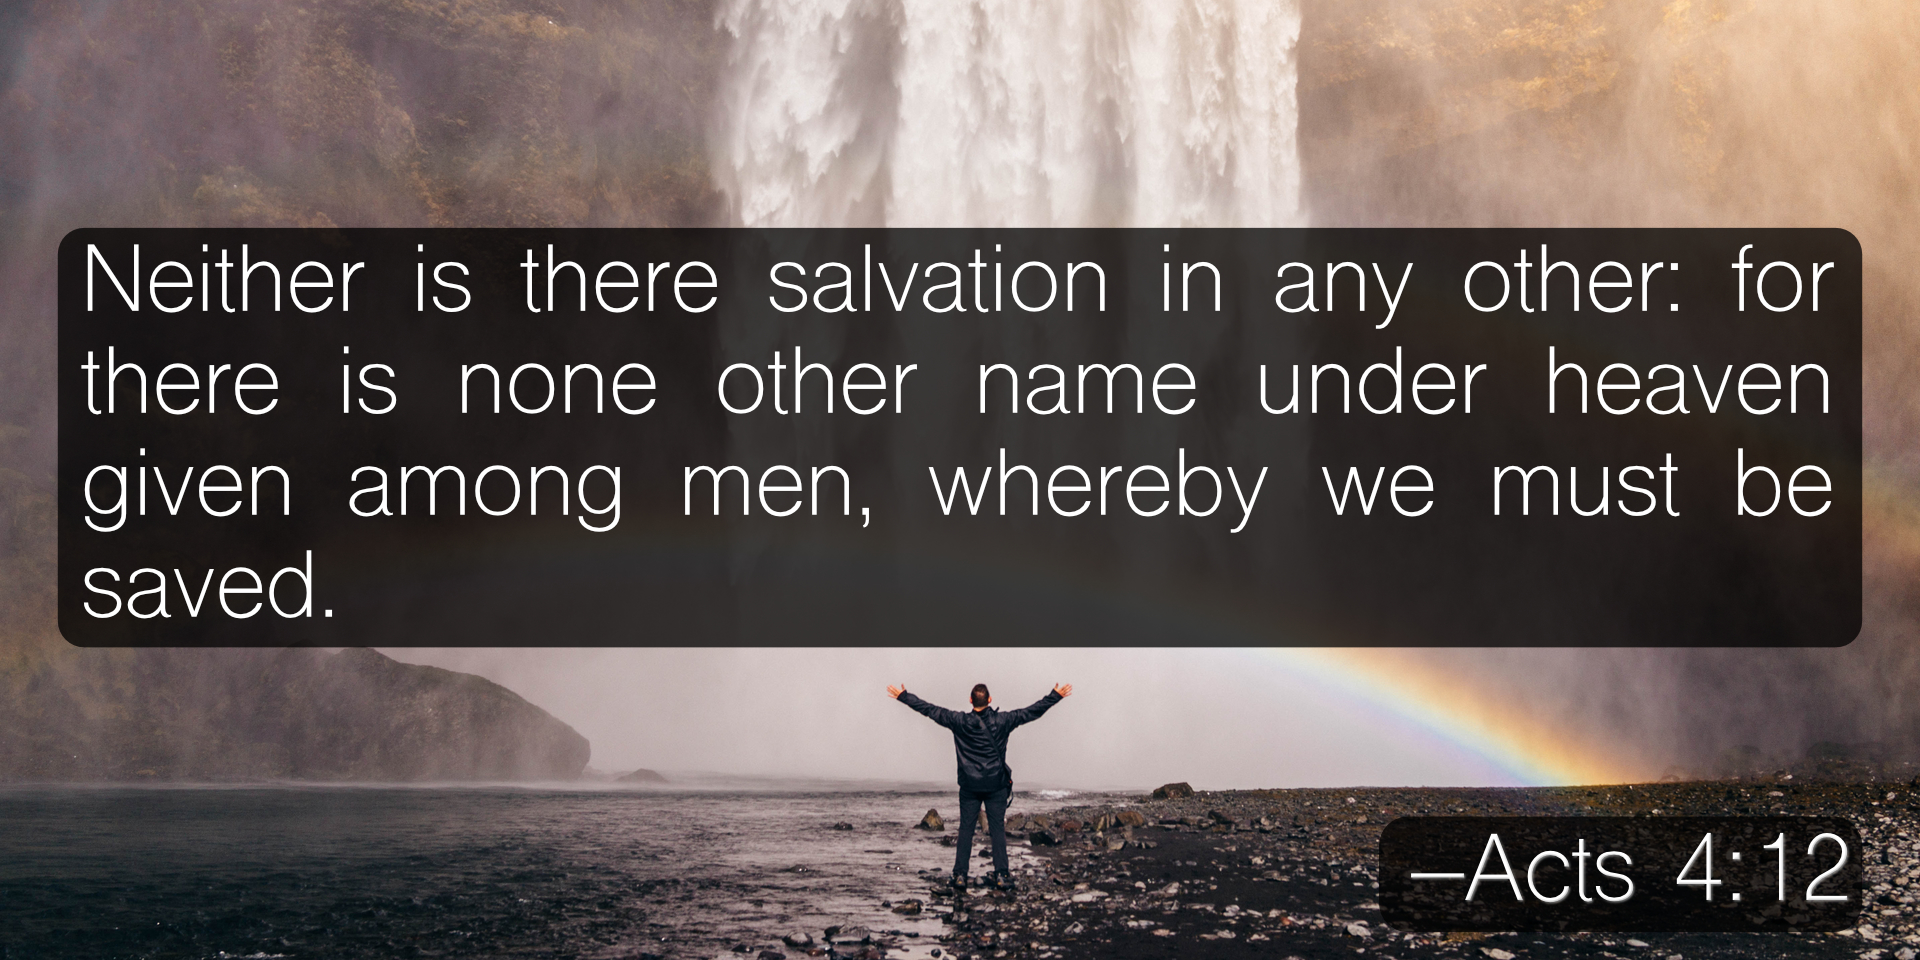 Neither is there salvation in any other: for there is none other name under heaven given among men, whereby we must be saved. –Acts 4:12